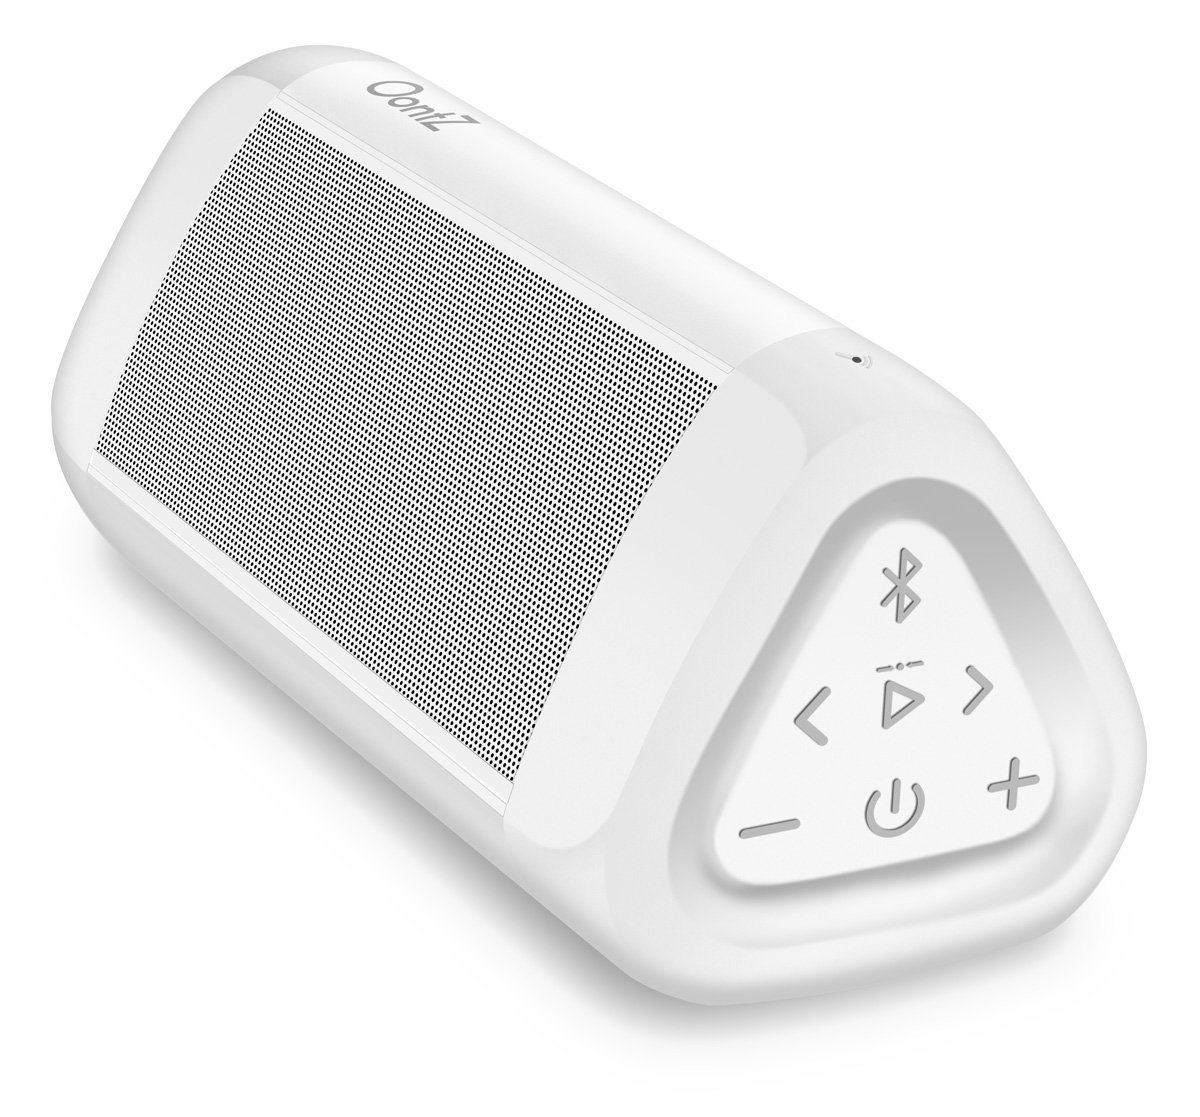 Parlante Bluetooth Oontz Angle 3 Ultra Portable 14 Watts Del